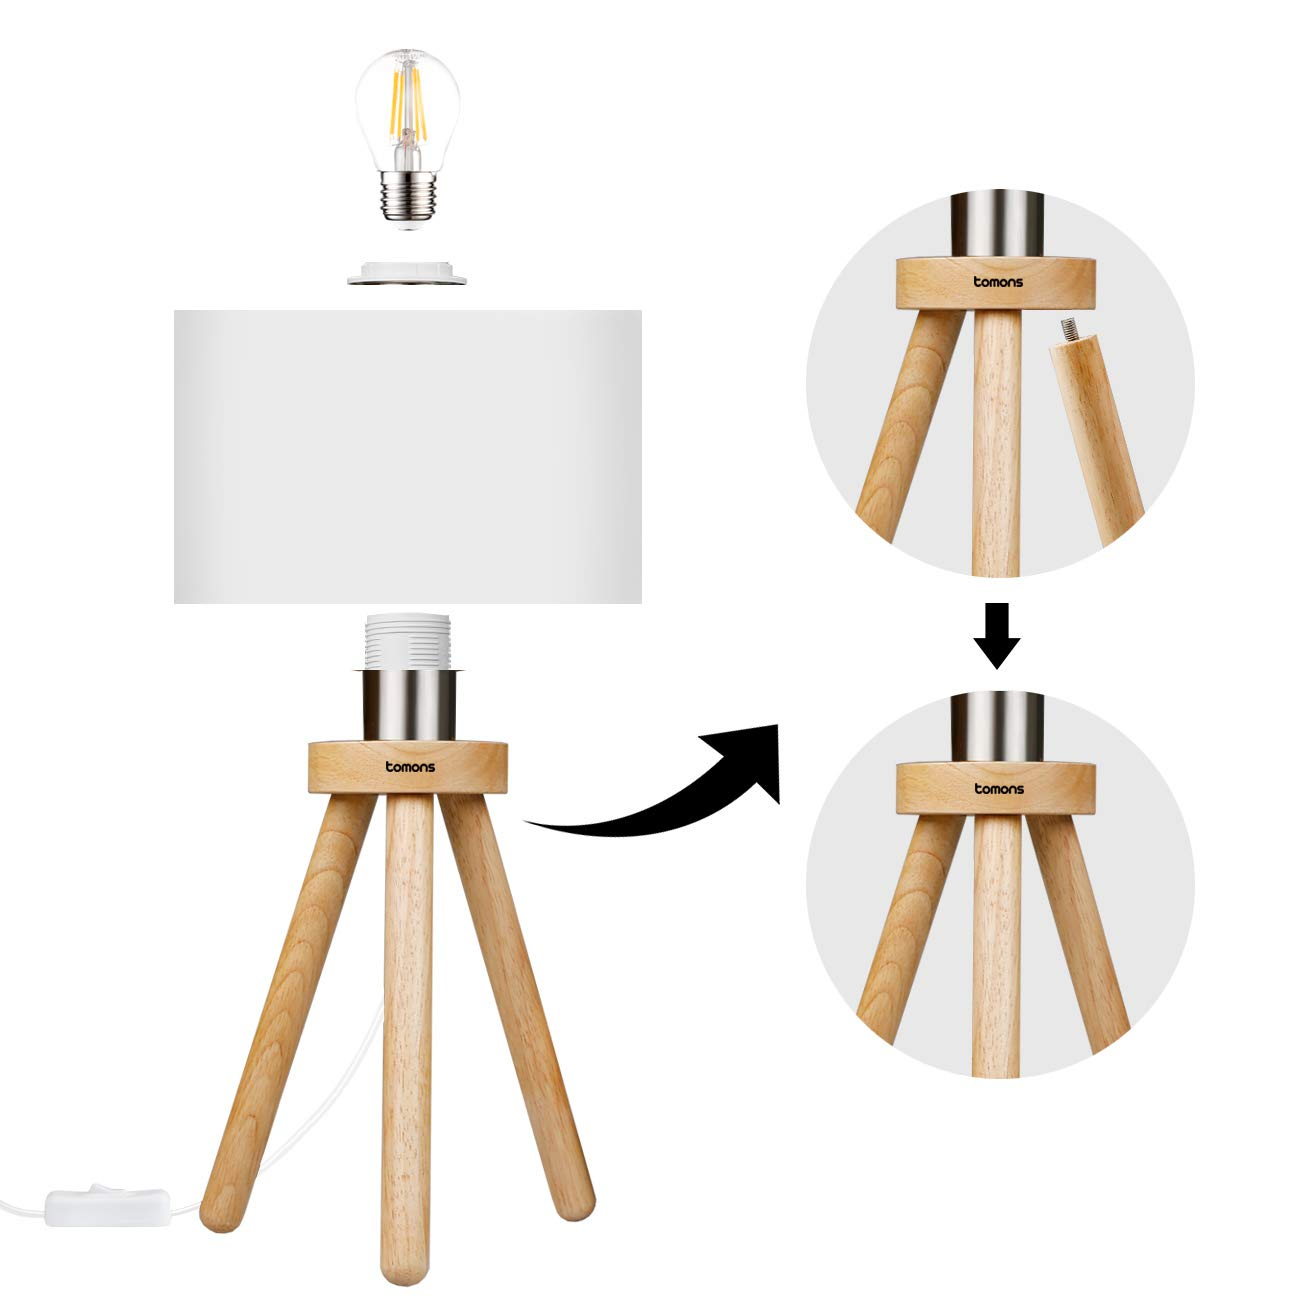 Tomons Wood Tripod Bedside Lamp, Simple Design with Soft Light for Bedroom Decorated in Warm and Cozy Ambience, Polyester White Fabric Lampshade, Packaged with 4W LED Bulb, Warm White Light, 39cm High by Tomons (Image #6)